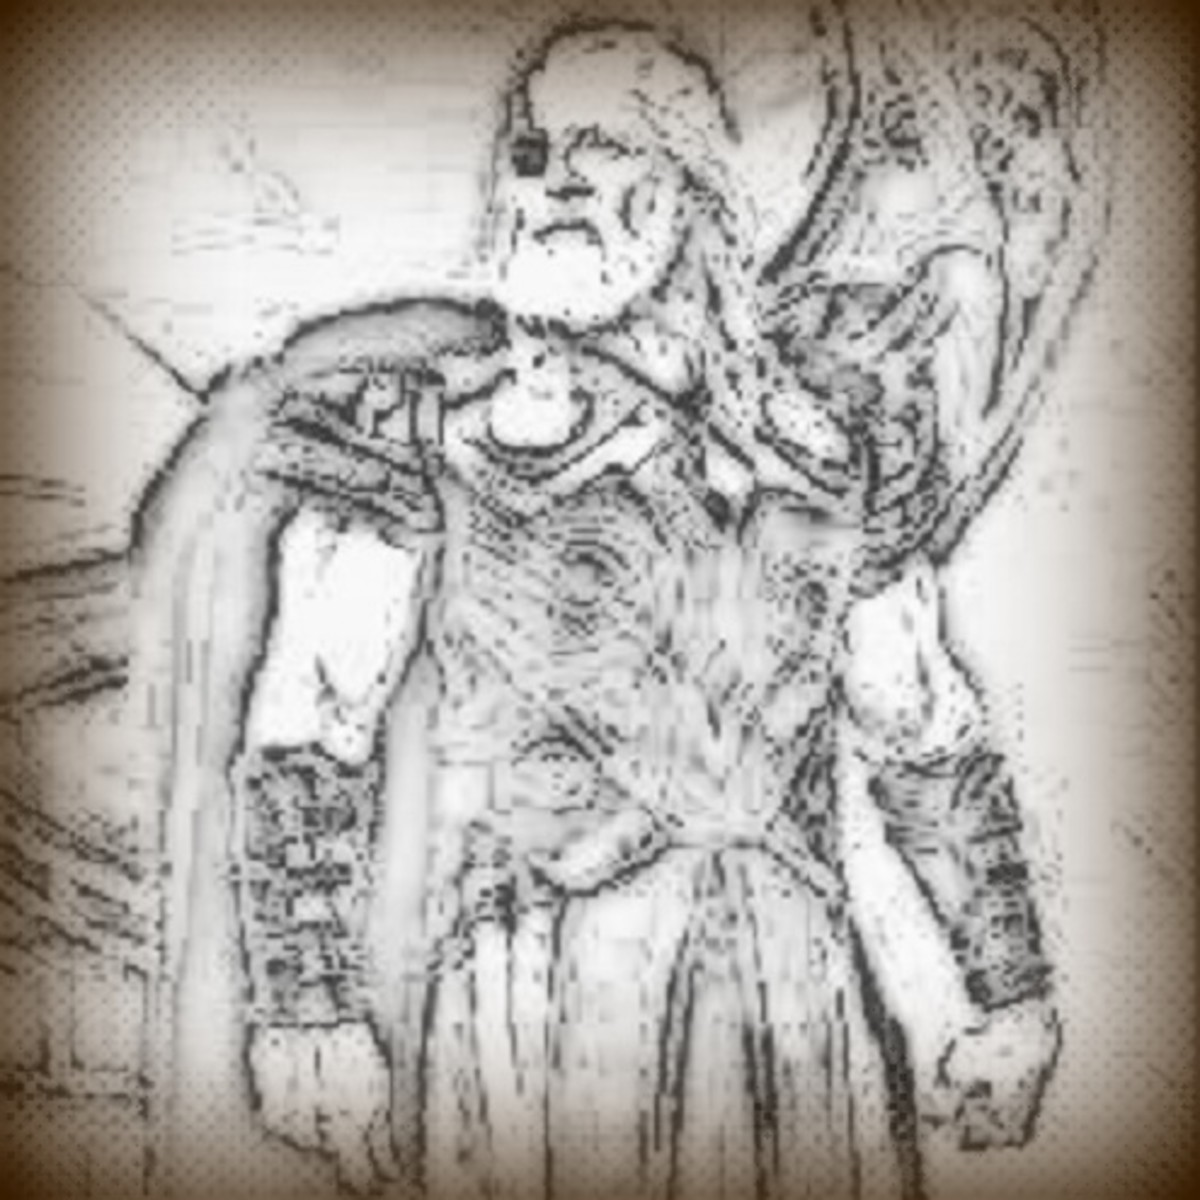 Odin has been depicted throughout history as a wise god. Anthony Hopkins recently played Odin in the Thor movies.